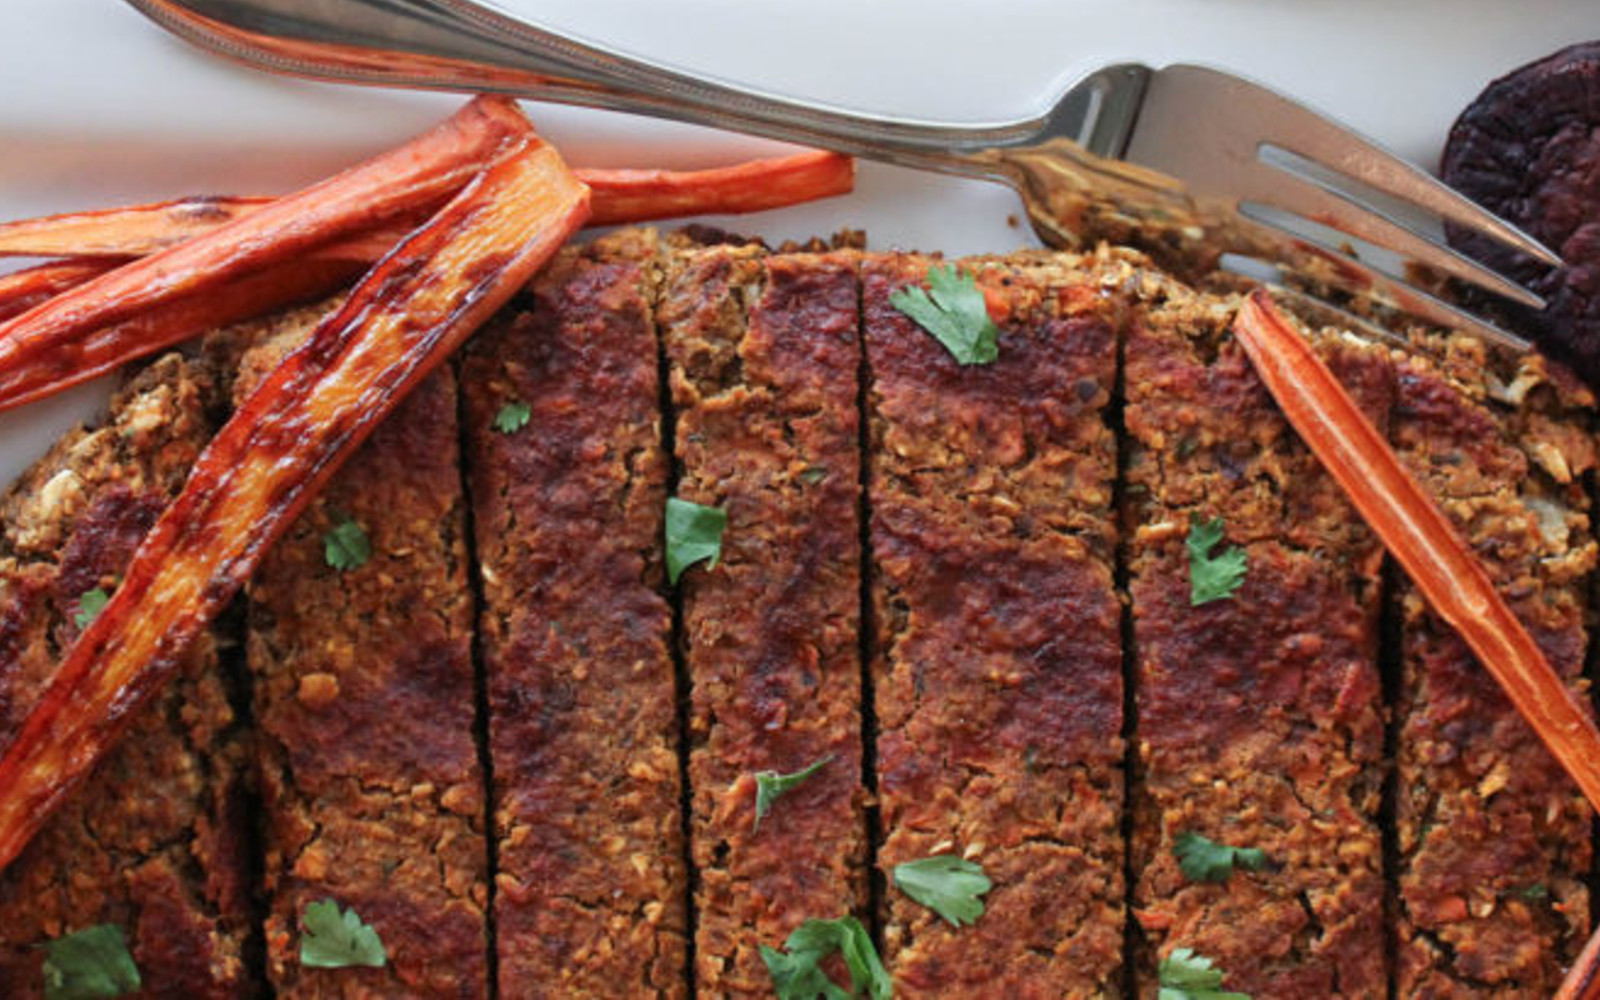 Vegan Gluten-Free Lentil Vegetable Loaf after baking topped with herbs and roasted carrots